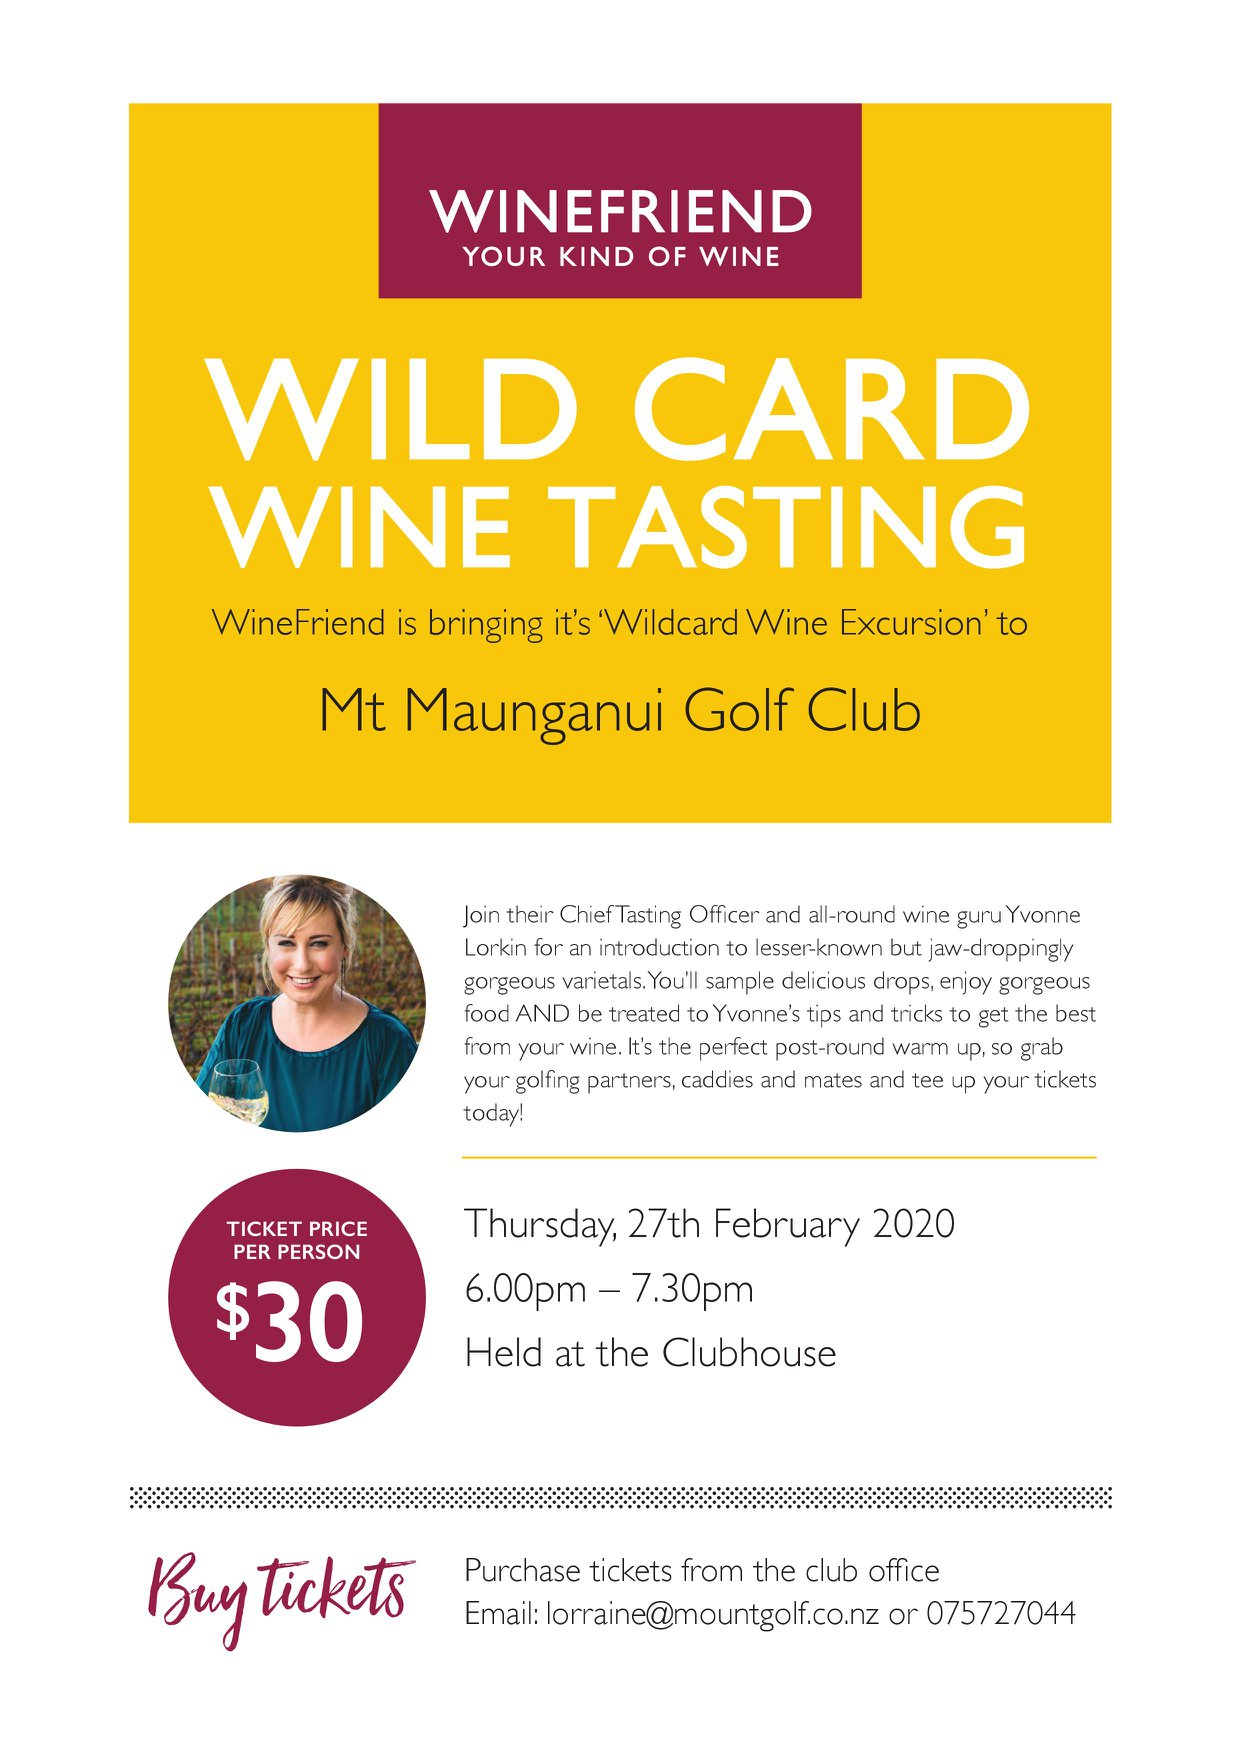 Wildcard Wine Tasting Mount Maunganui Golf!